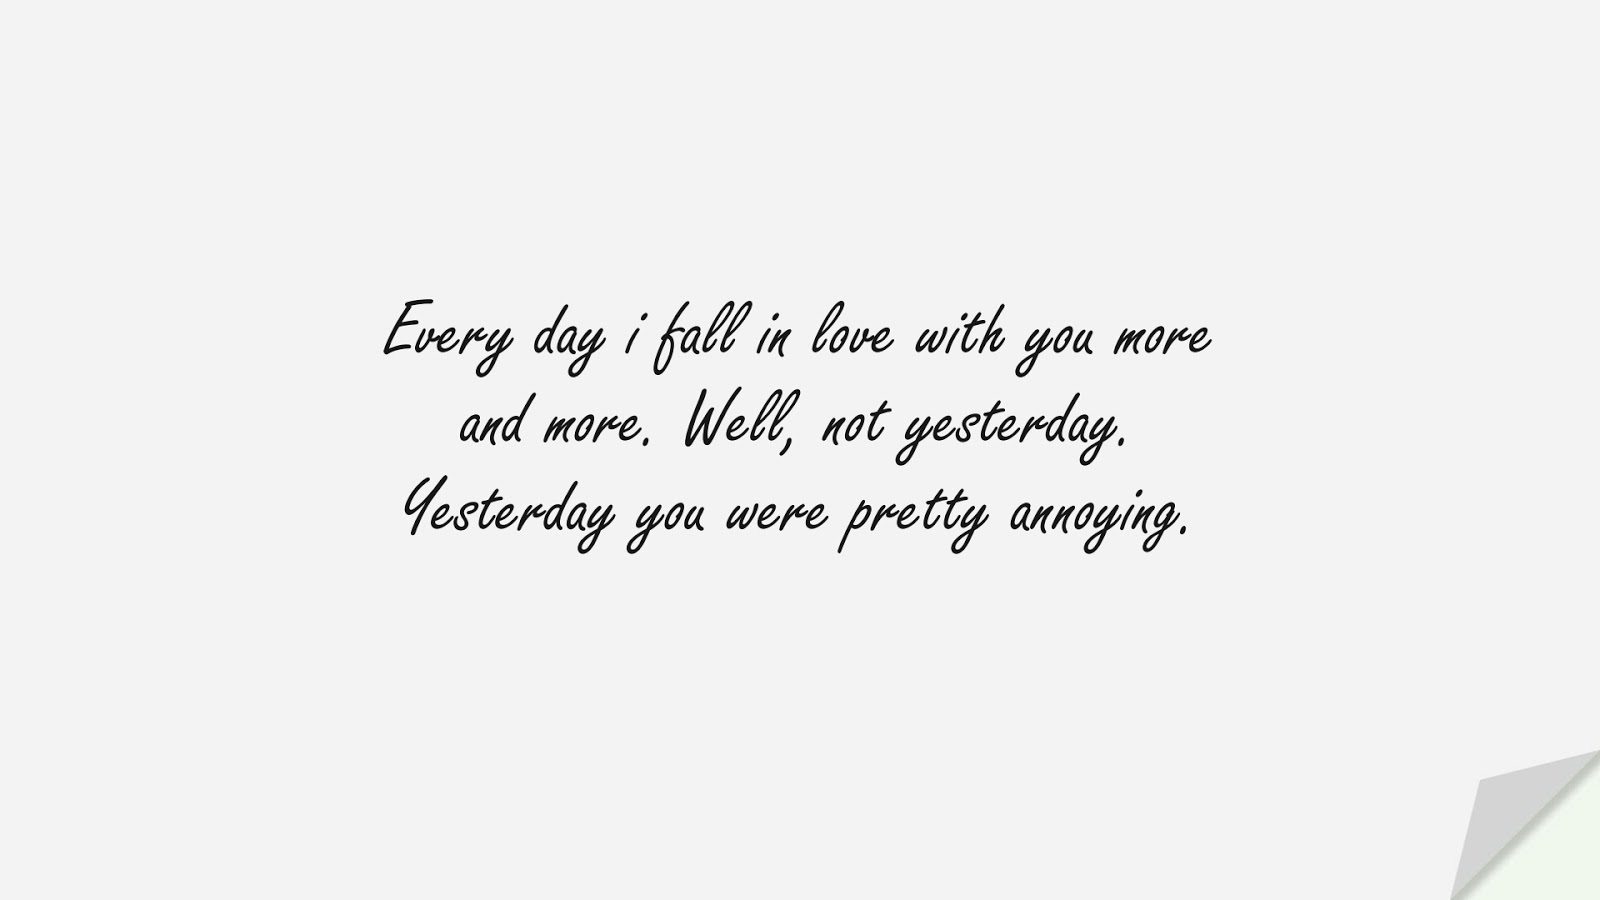 Every day i fall in love with you more and more. Well, not yesterday. Yesterday you were pretty annoying.FALSE